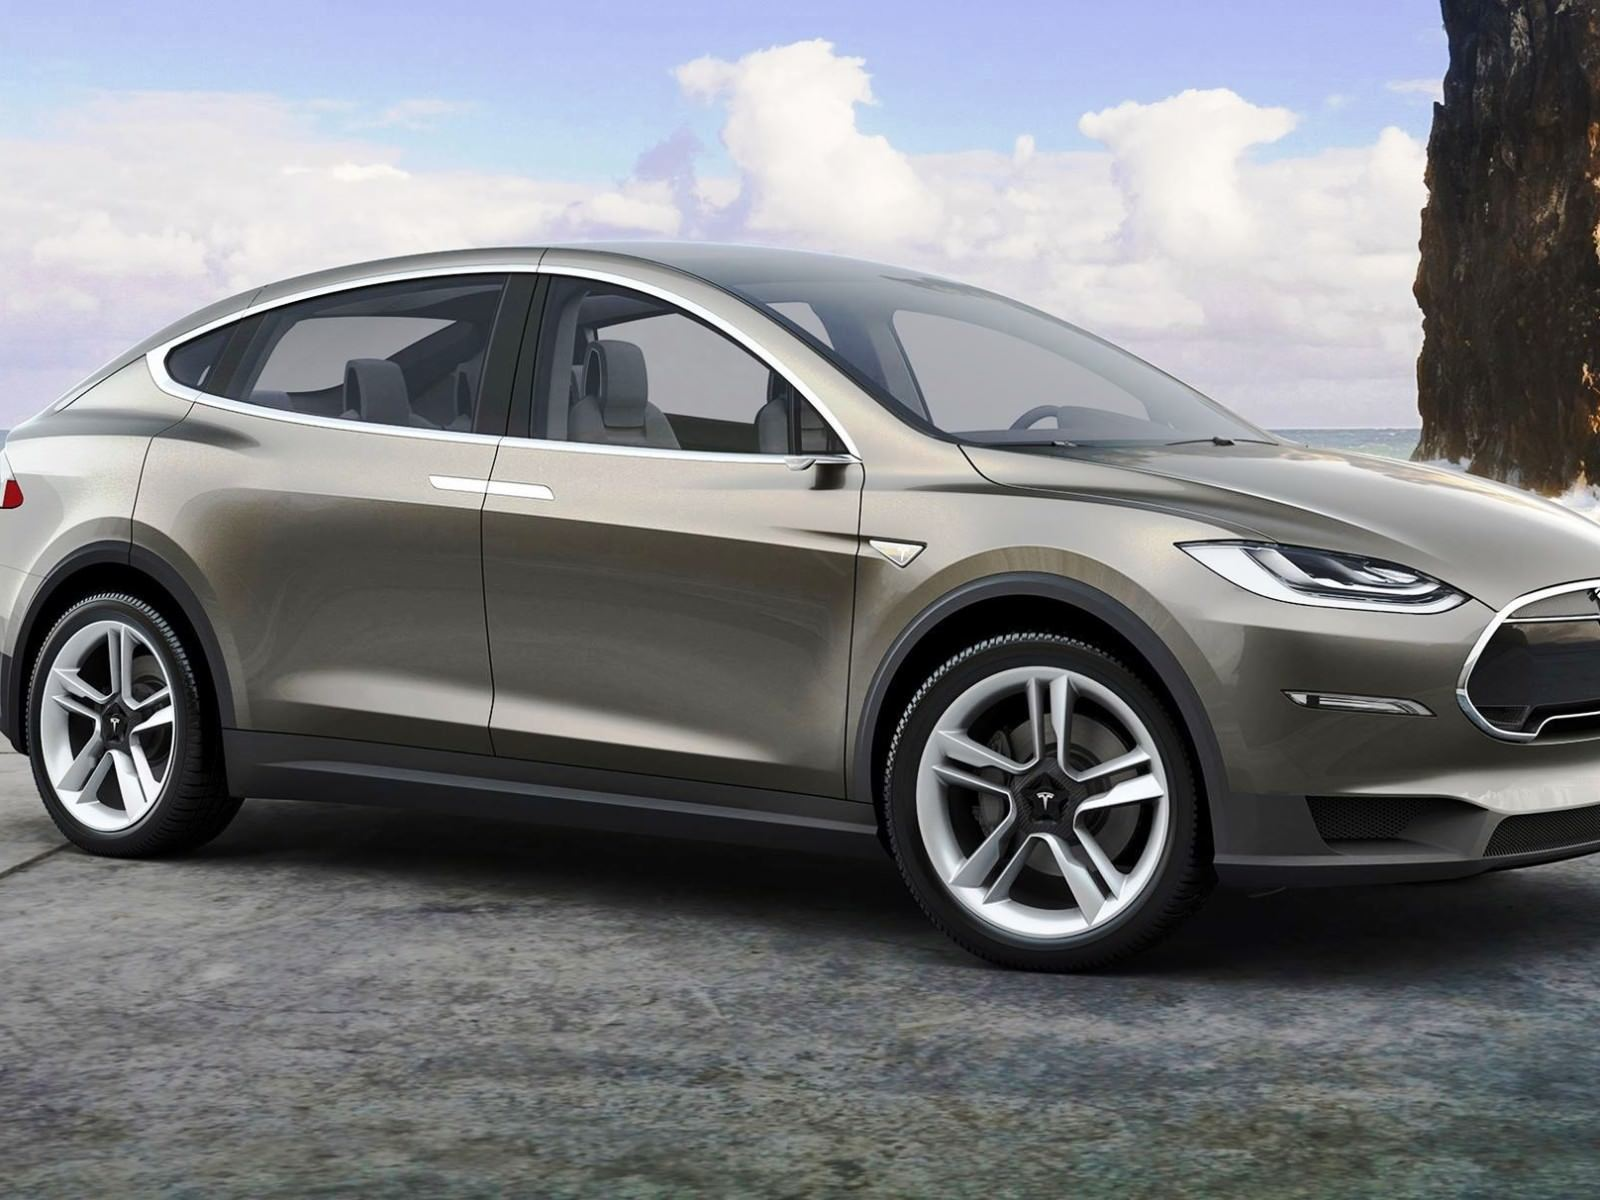 2016 tesla model x 10. Black Bedroom Furniture Sets. Home Design Ideas